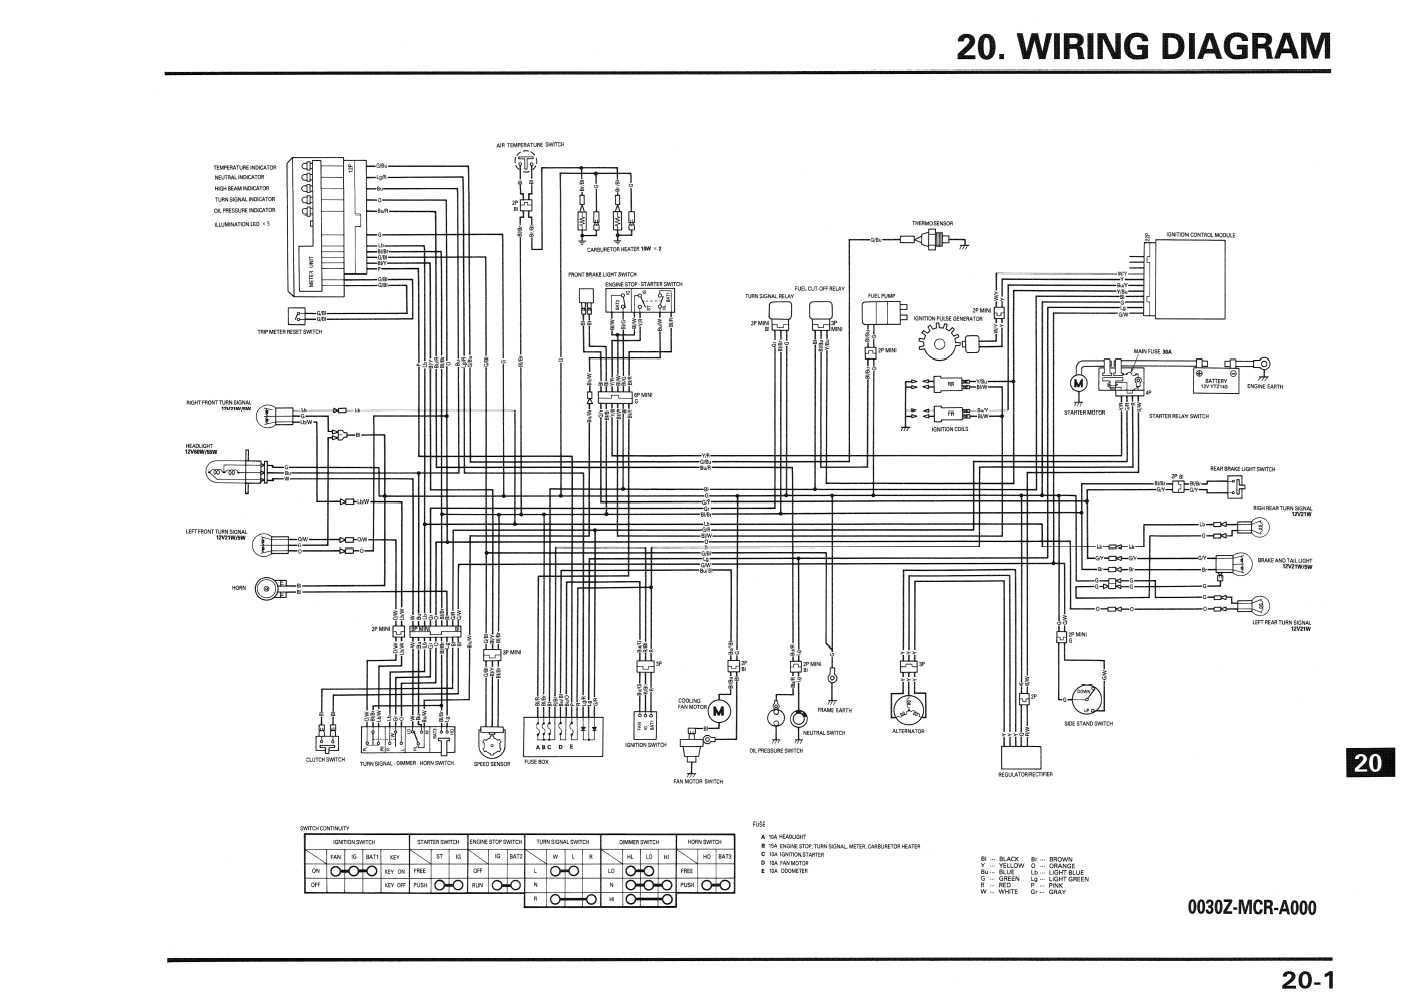 61mcr02_348_1 honda vt750dc shop manual wiring diagram honda shadow wiring diagram at bakdesigns.co